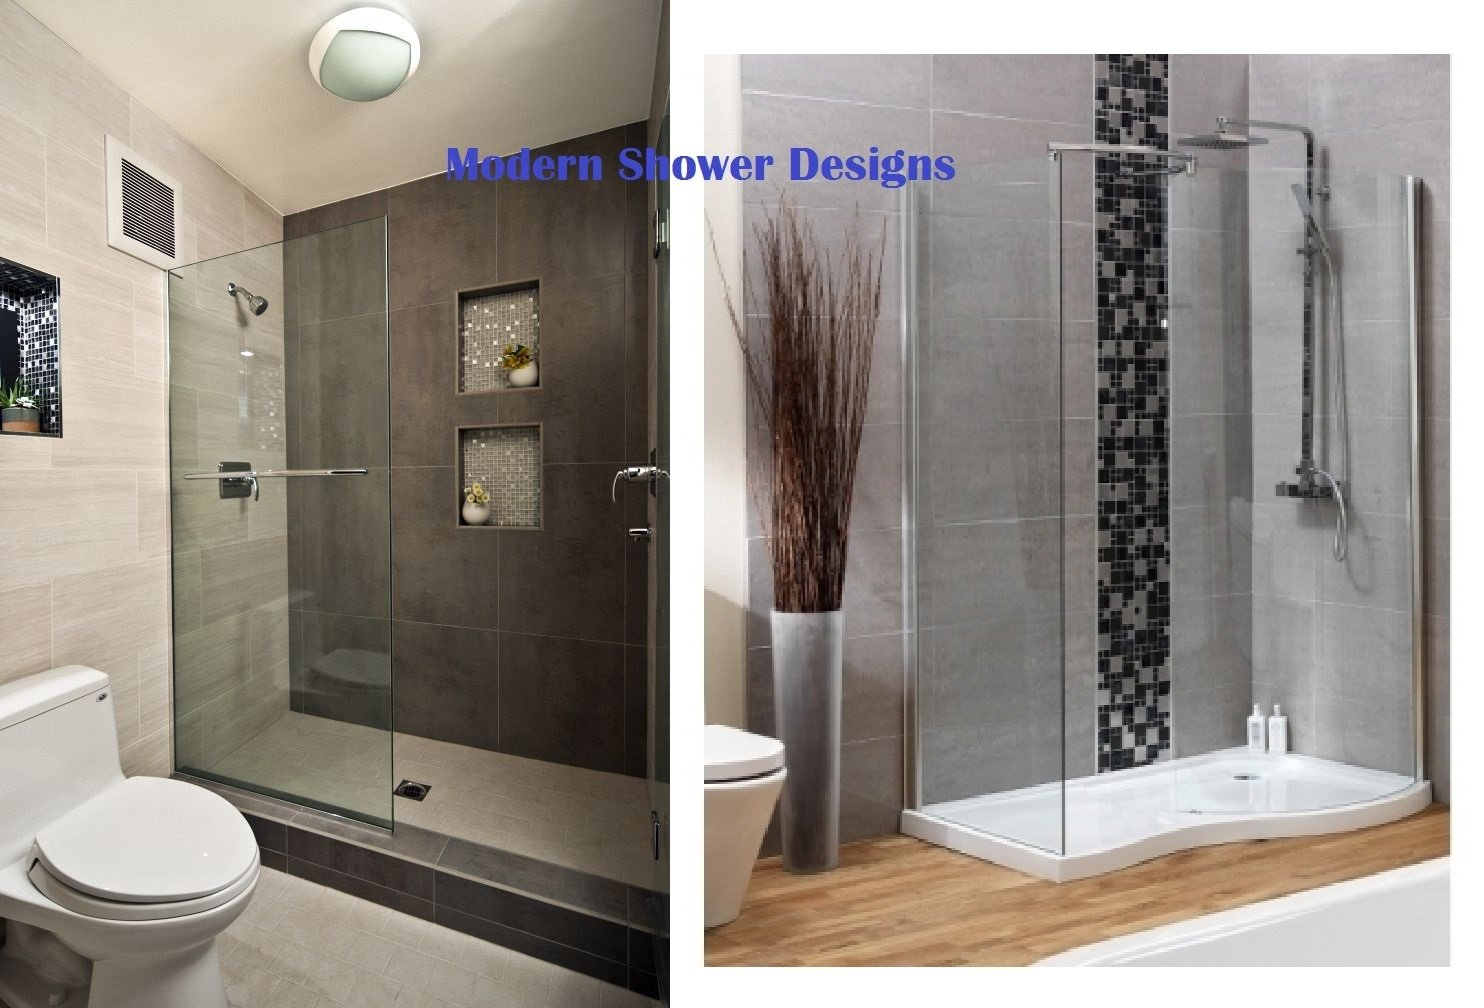 10 Attractive Walk In Shower Remodel Ideas bathroom remodel ideas walk in shower most widely used walk shower 2020